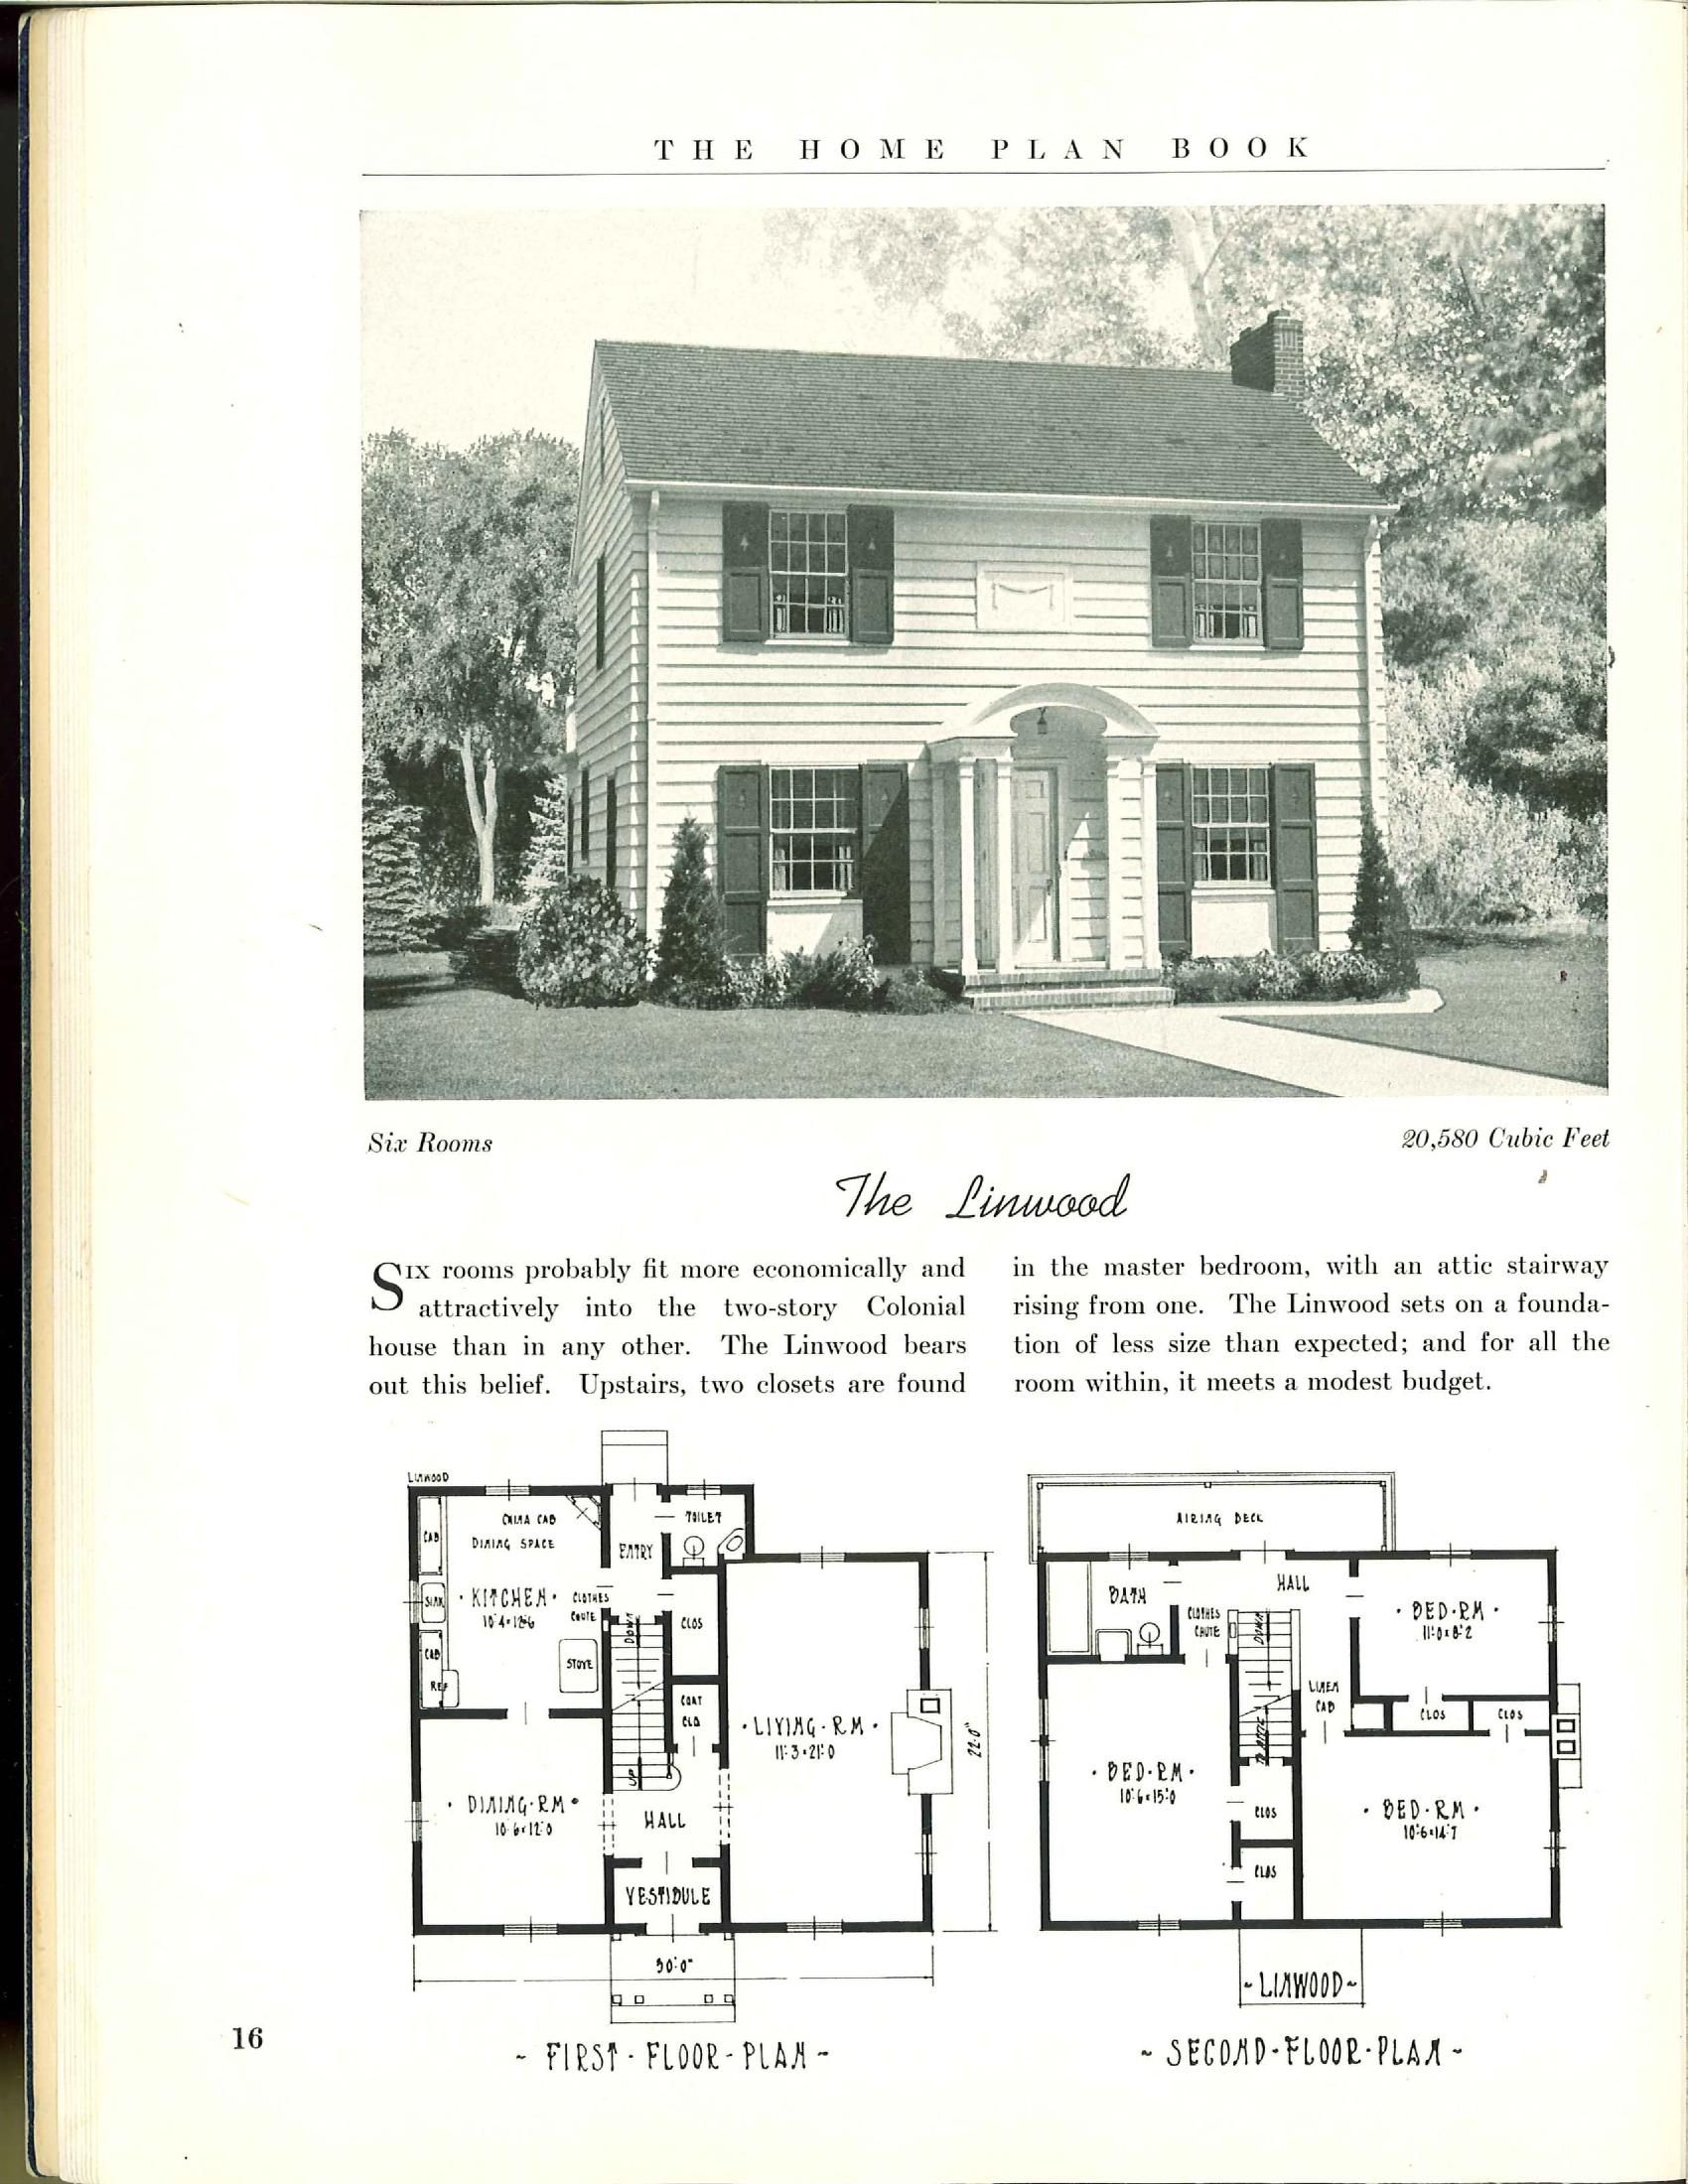 The Home Plan Book 49 Designs Home Plan Book Co Free Download Borrow And Streaming Internet Archive House Plans Vintage House Plans Small House Inspiration